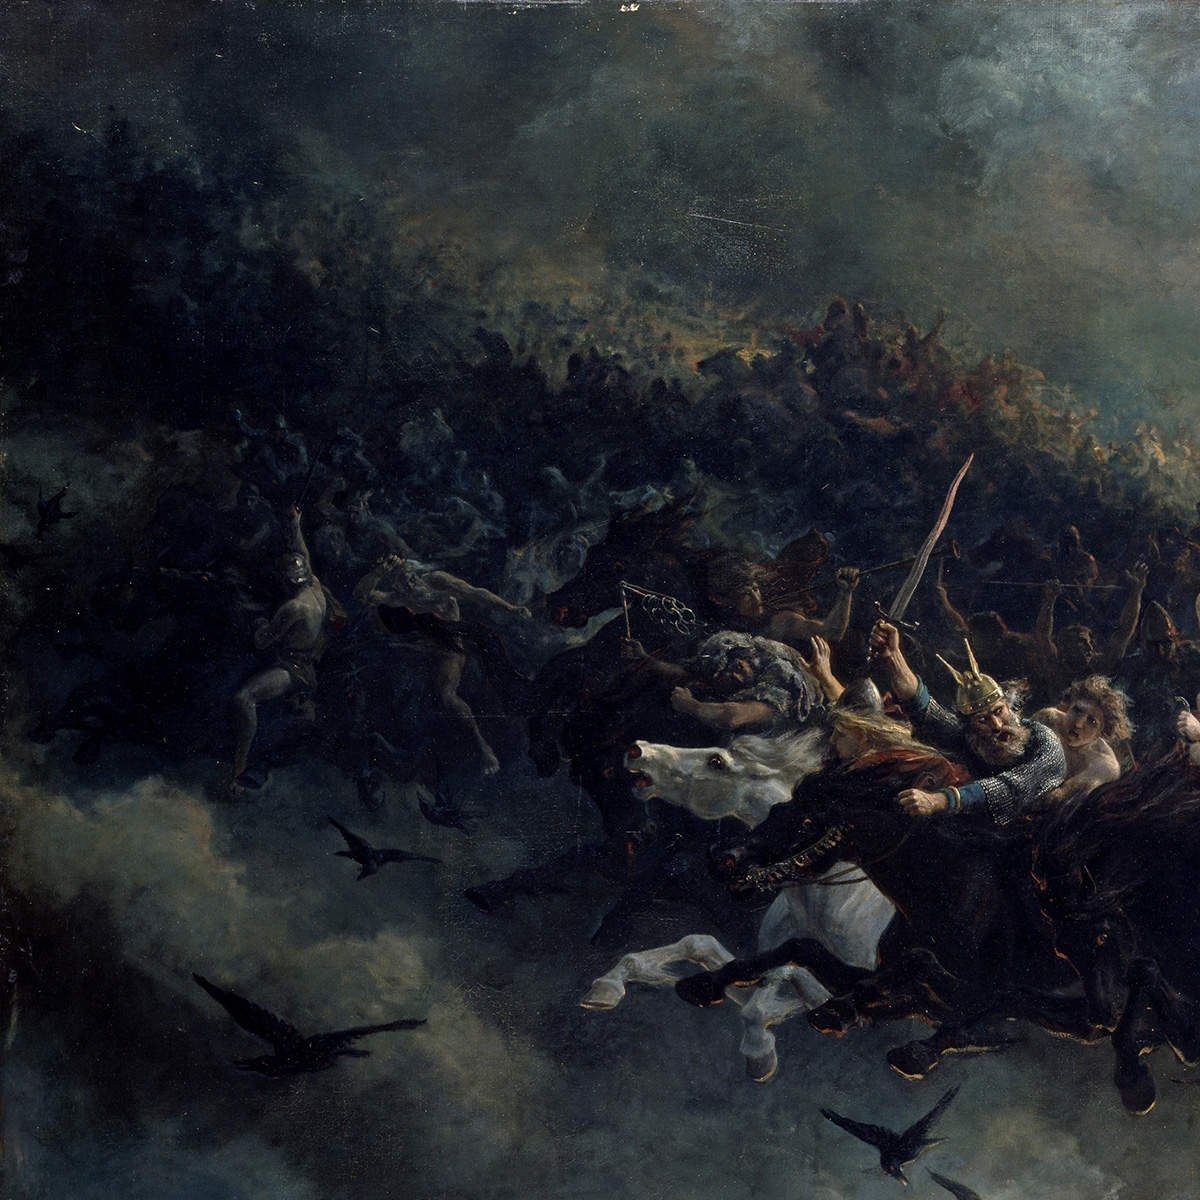 Asgårdsreien [The Wild Hunt of Odin] (1872) by Peter Nicolai Arbo